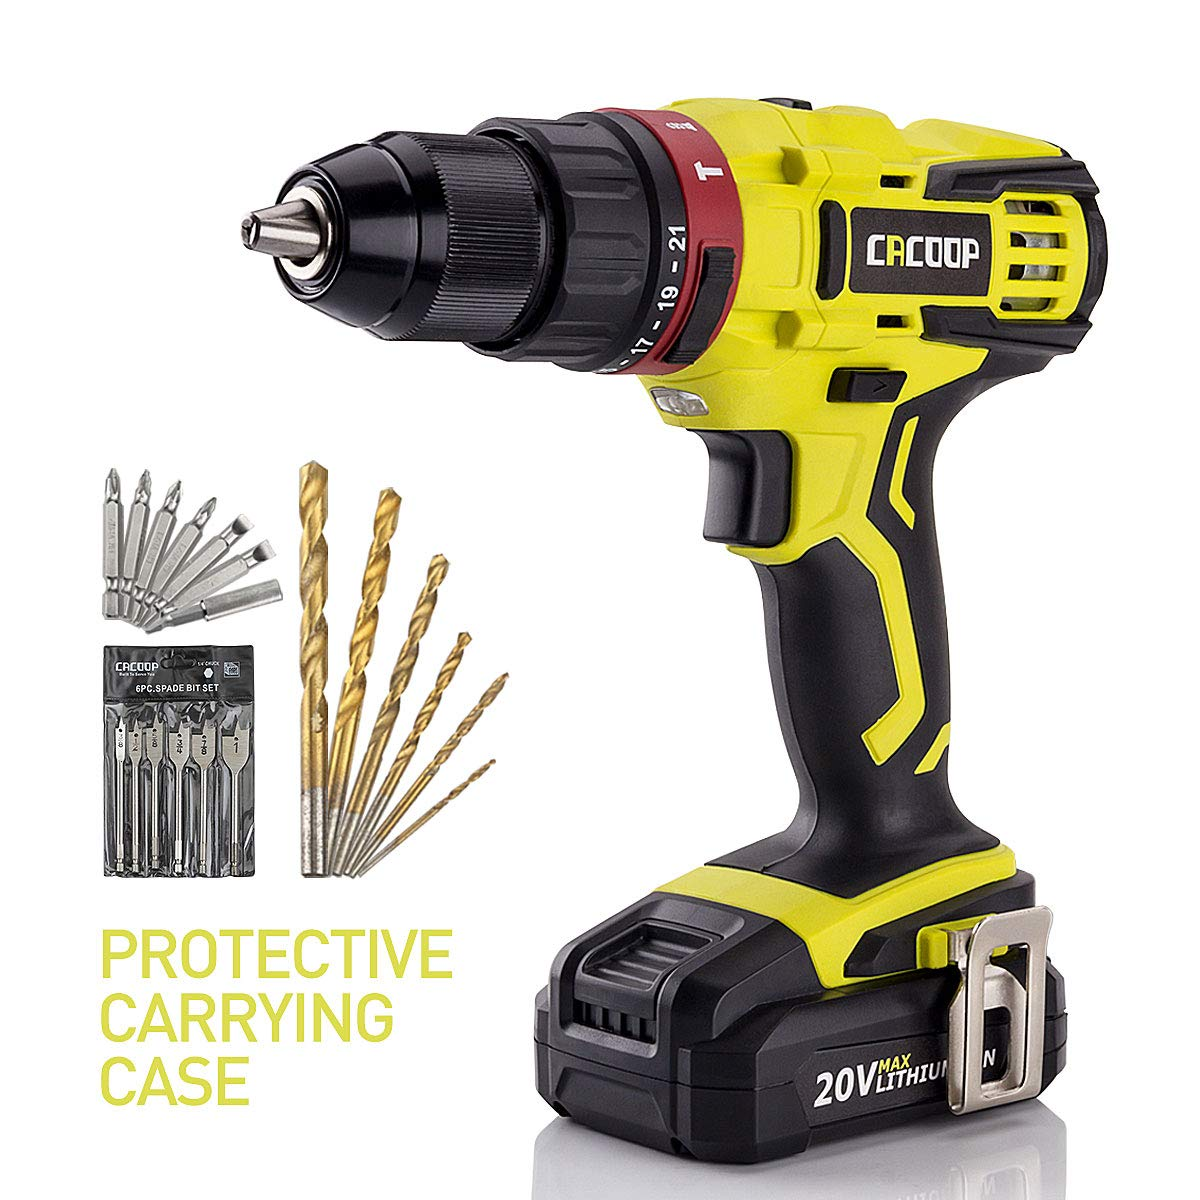 "CACOOP 20V Hammer Drill/Driver set, 2-Speed, ½""All-Metal Chuck, Included 1)2.0Ah Li-Ion battery,1) rapid charger,12) wood drill bits,6) screwdriver Bits & 1) Magnetic Bit Holder (Hammerdrill)"